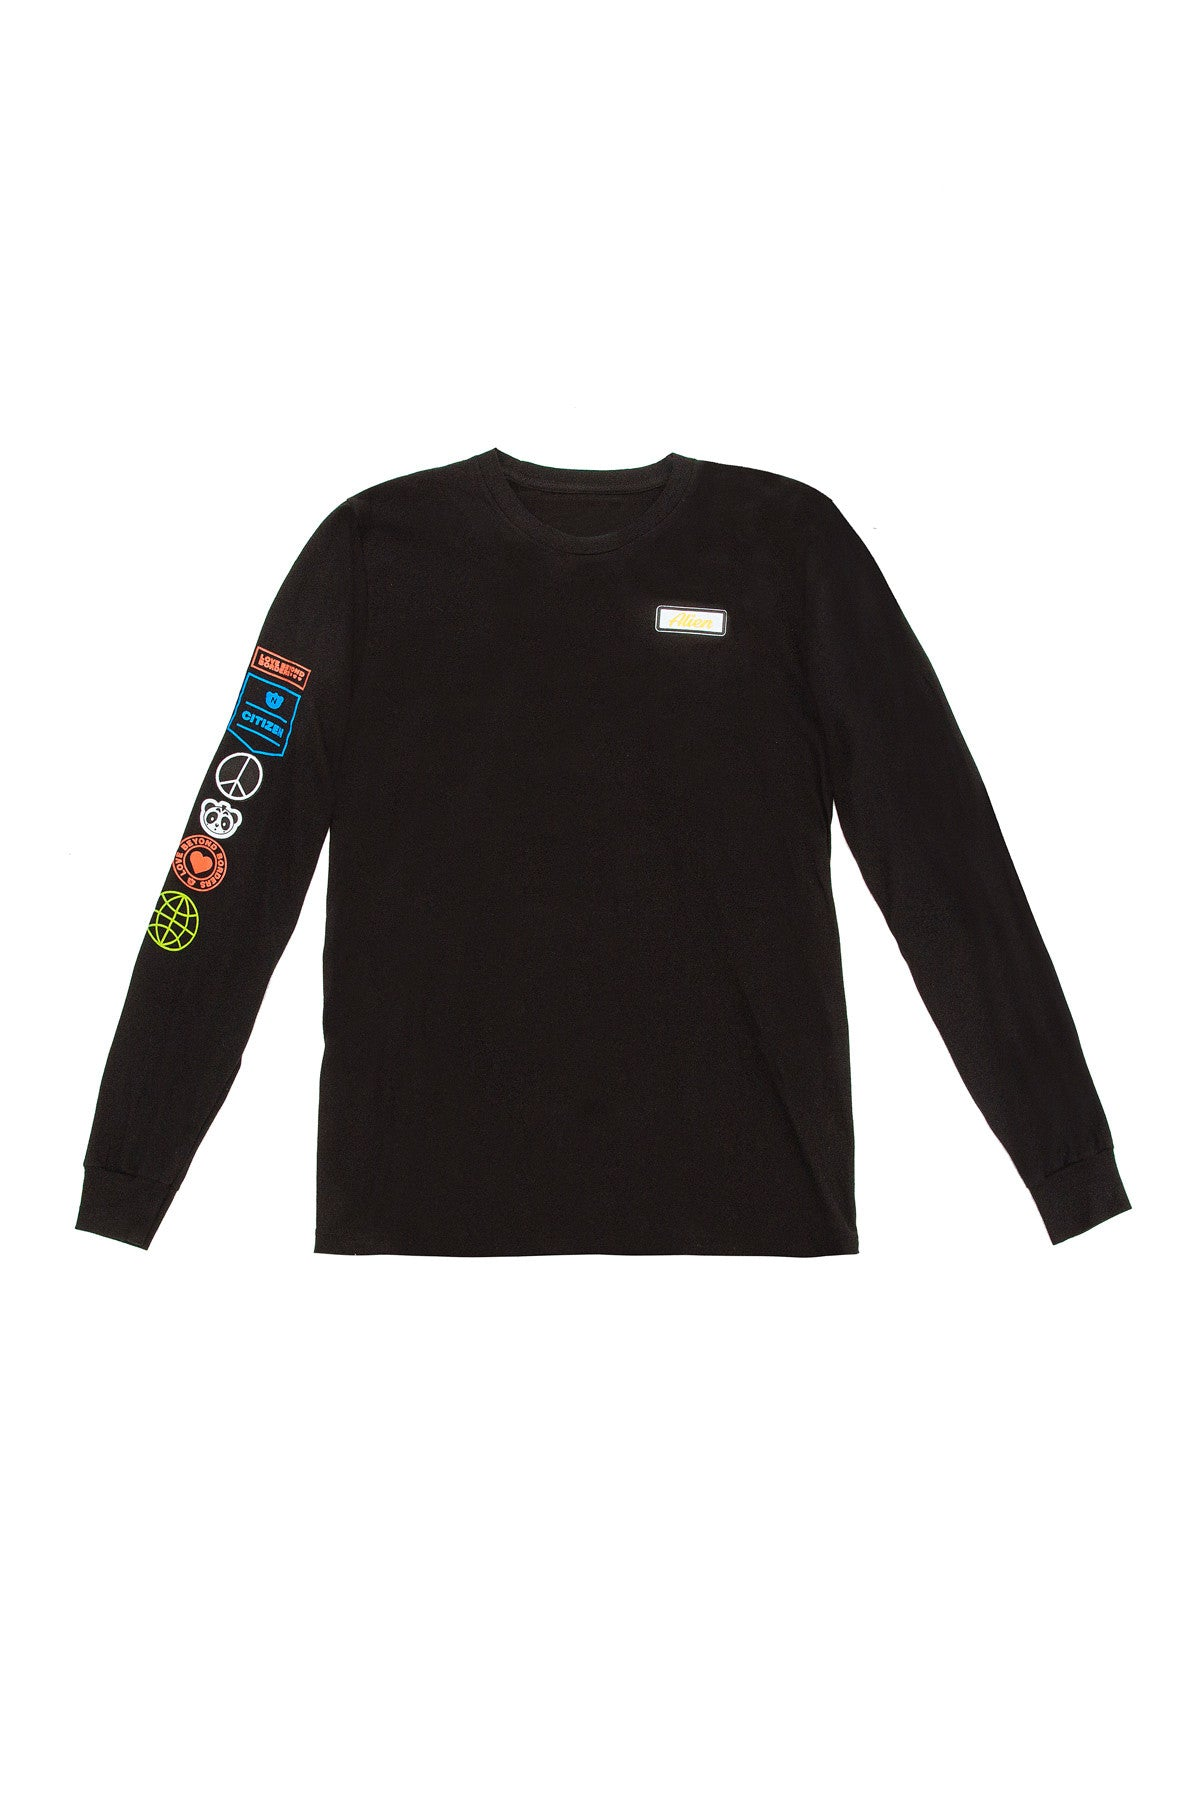 GLOBAL CITIZEN L/S T-SHIRT